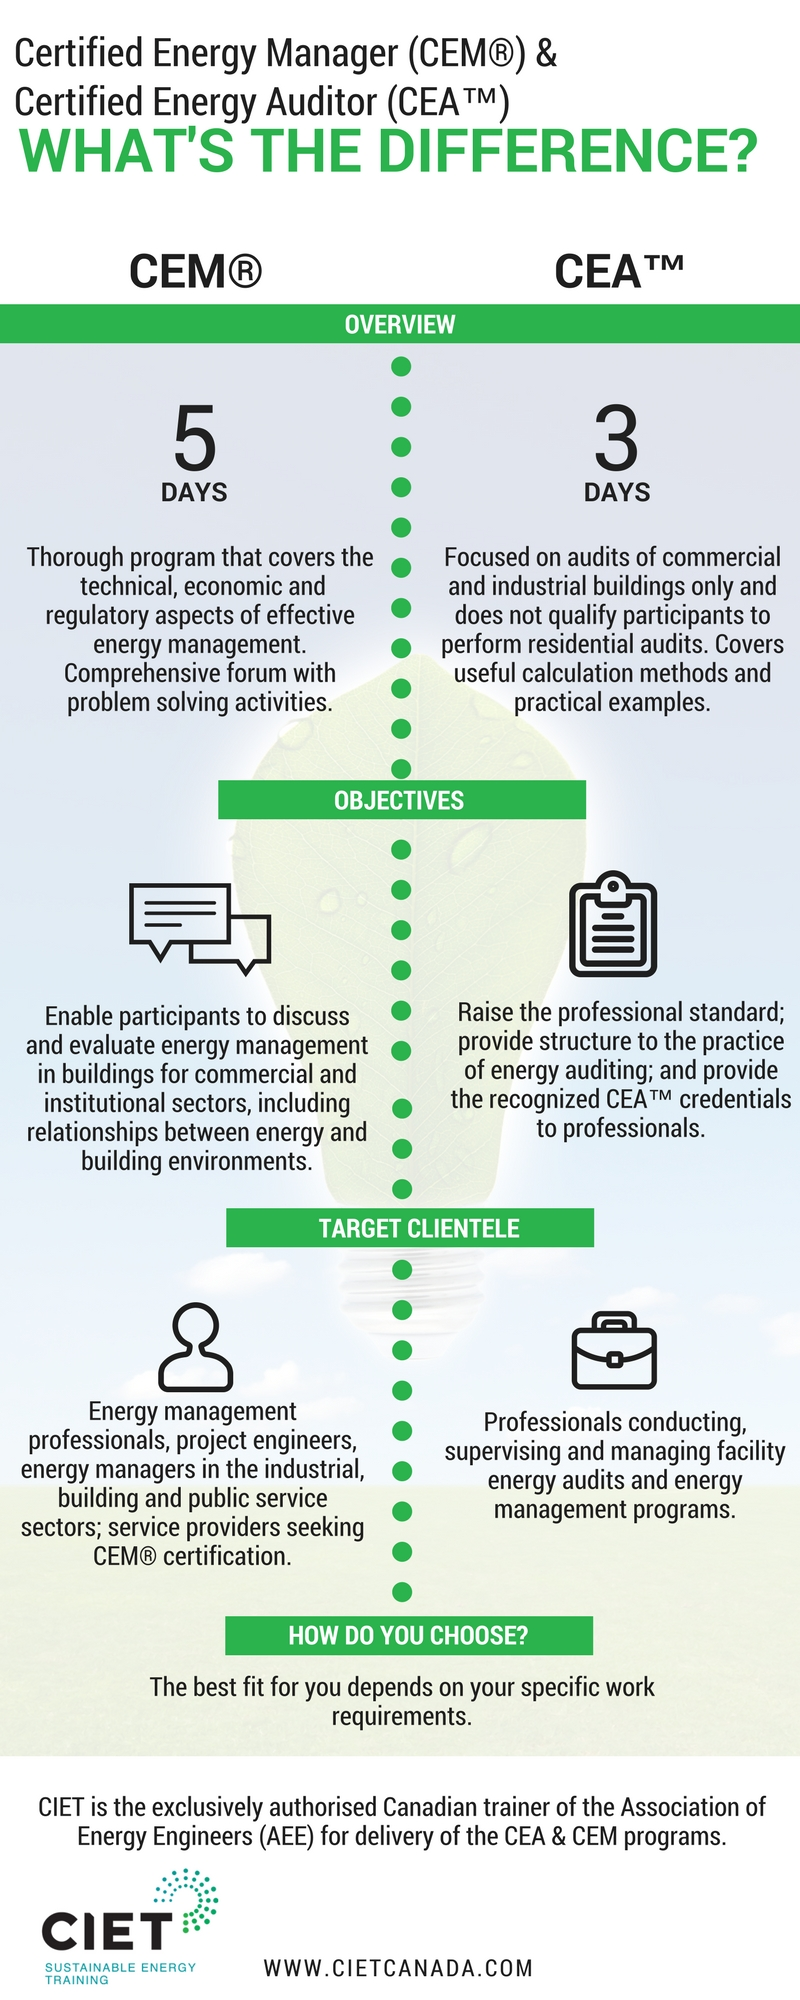 Ciet Certified Energy Manager Vs Certified Energy Auditor Whats